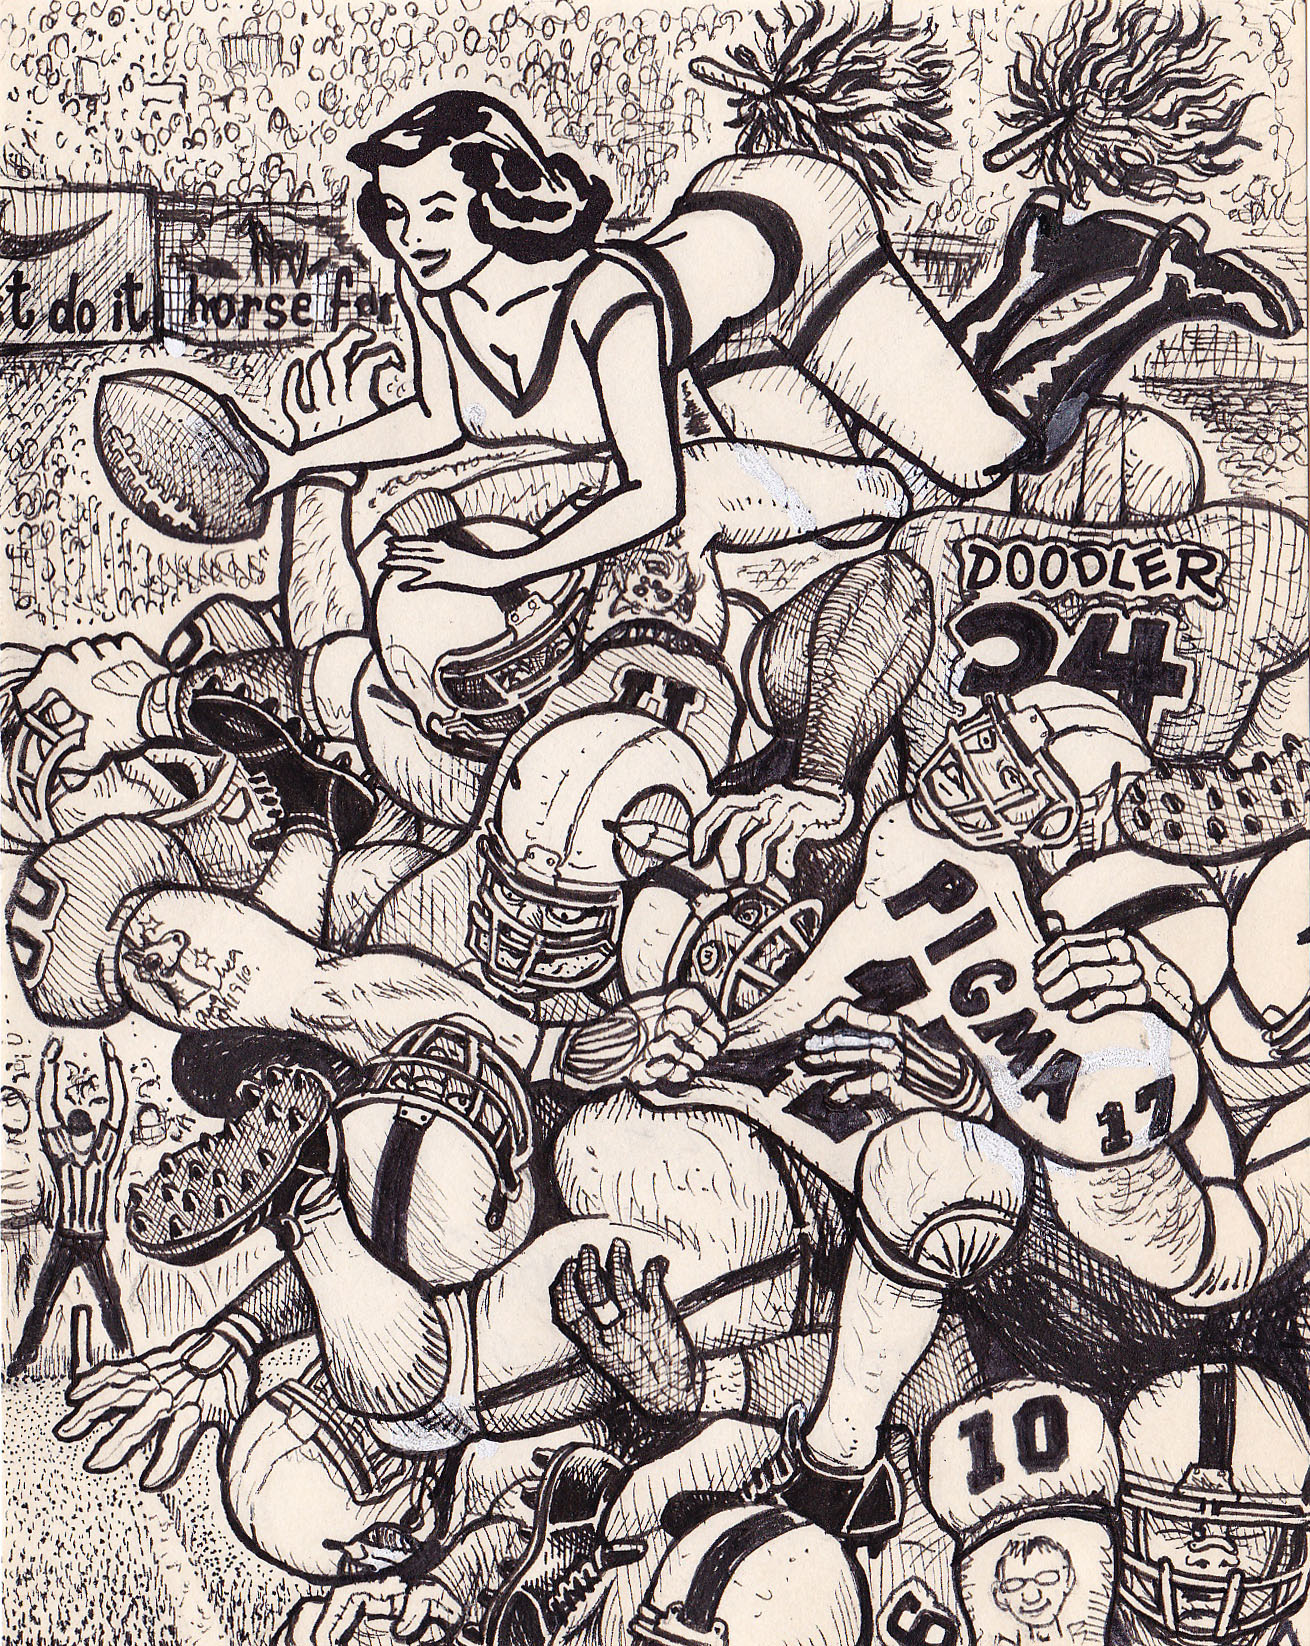 Diyd34football doodle pad art by david jablow diyd34football solutioingenieria Image collections